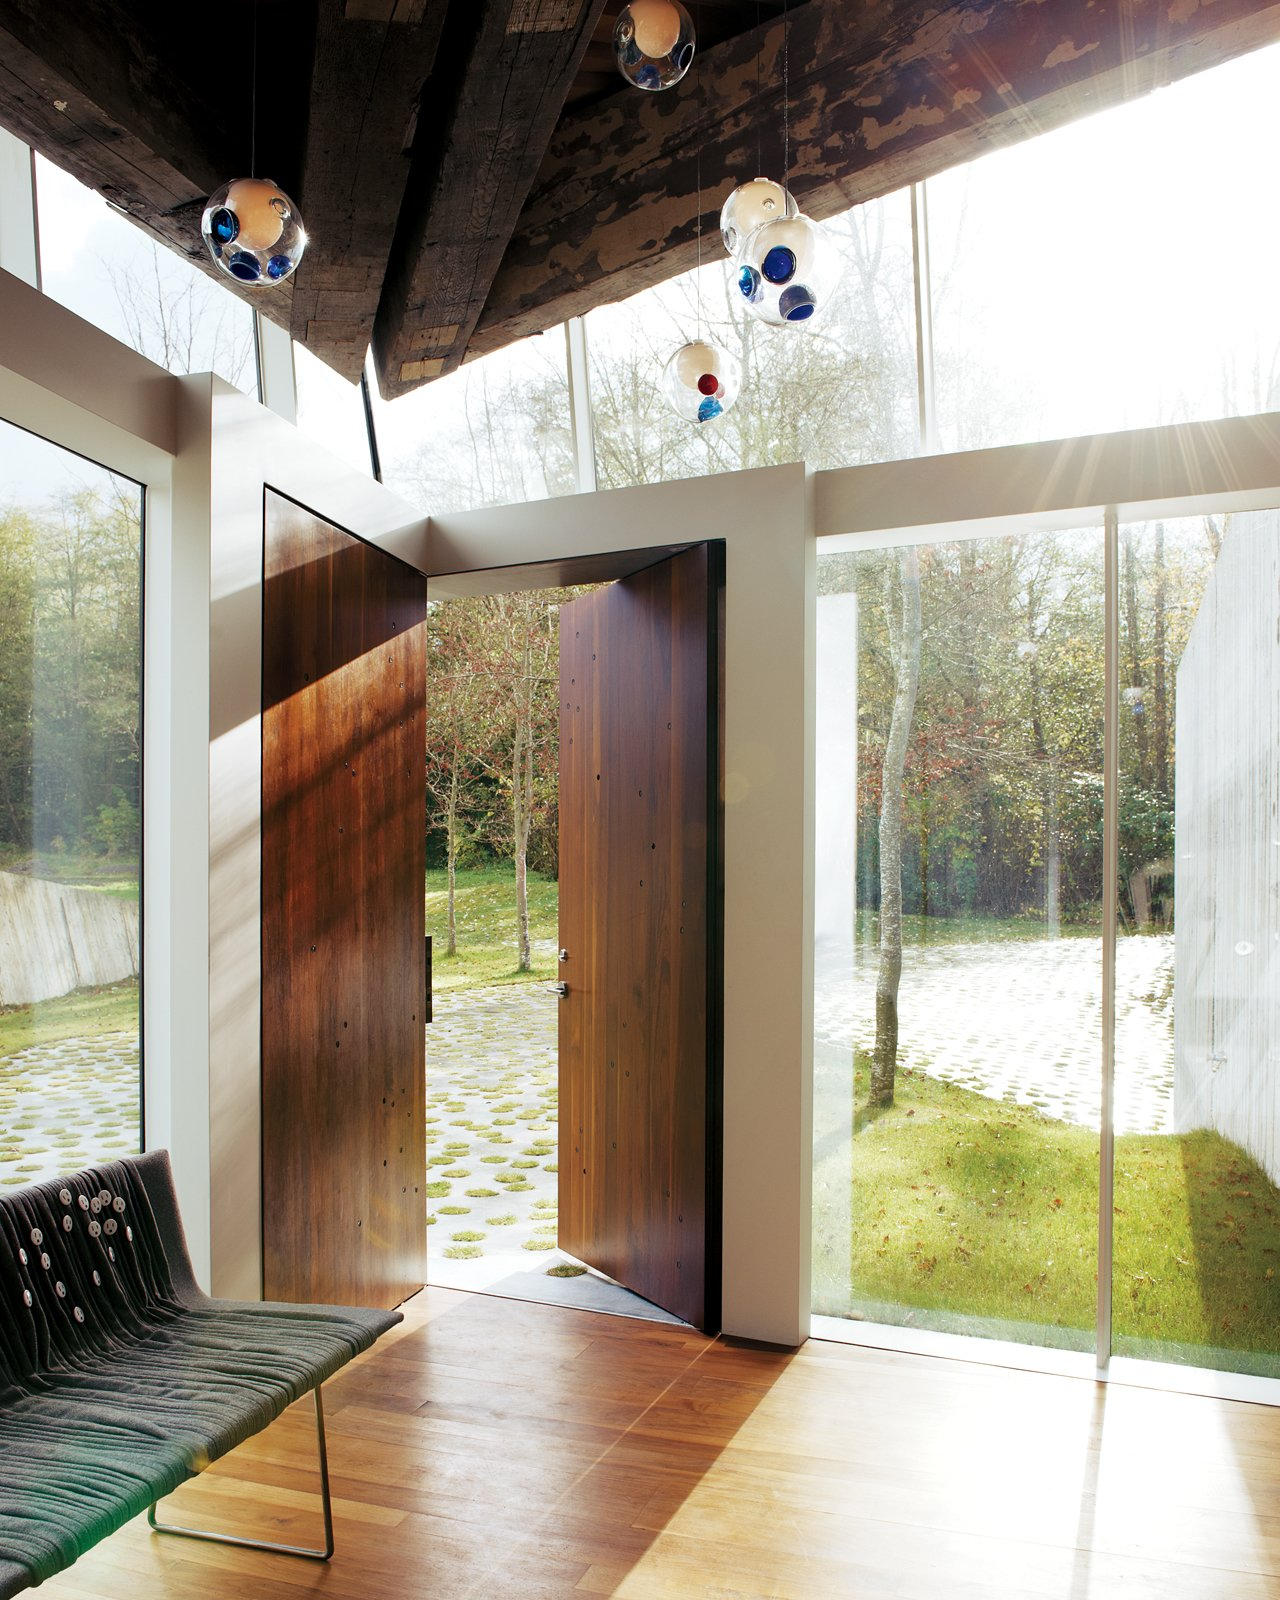 Doors, Wood, Exterior, and Swing Door Type While most homes have their front doors centered on a flat wall, this home in Canada by Omer Arbel is entered through two solid walnut doors at the corner of the home.  23.2 House by Jordan Kushins from Modern Angular Rural Family Home in Canada